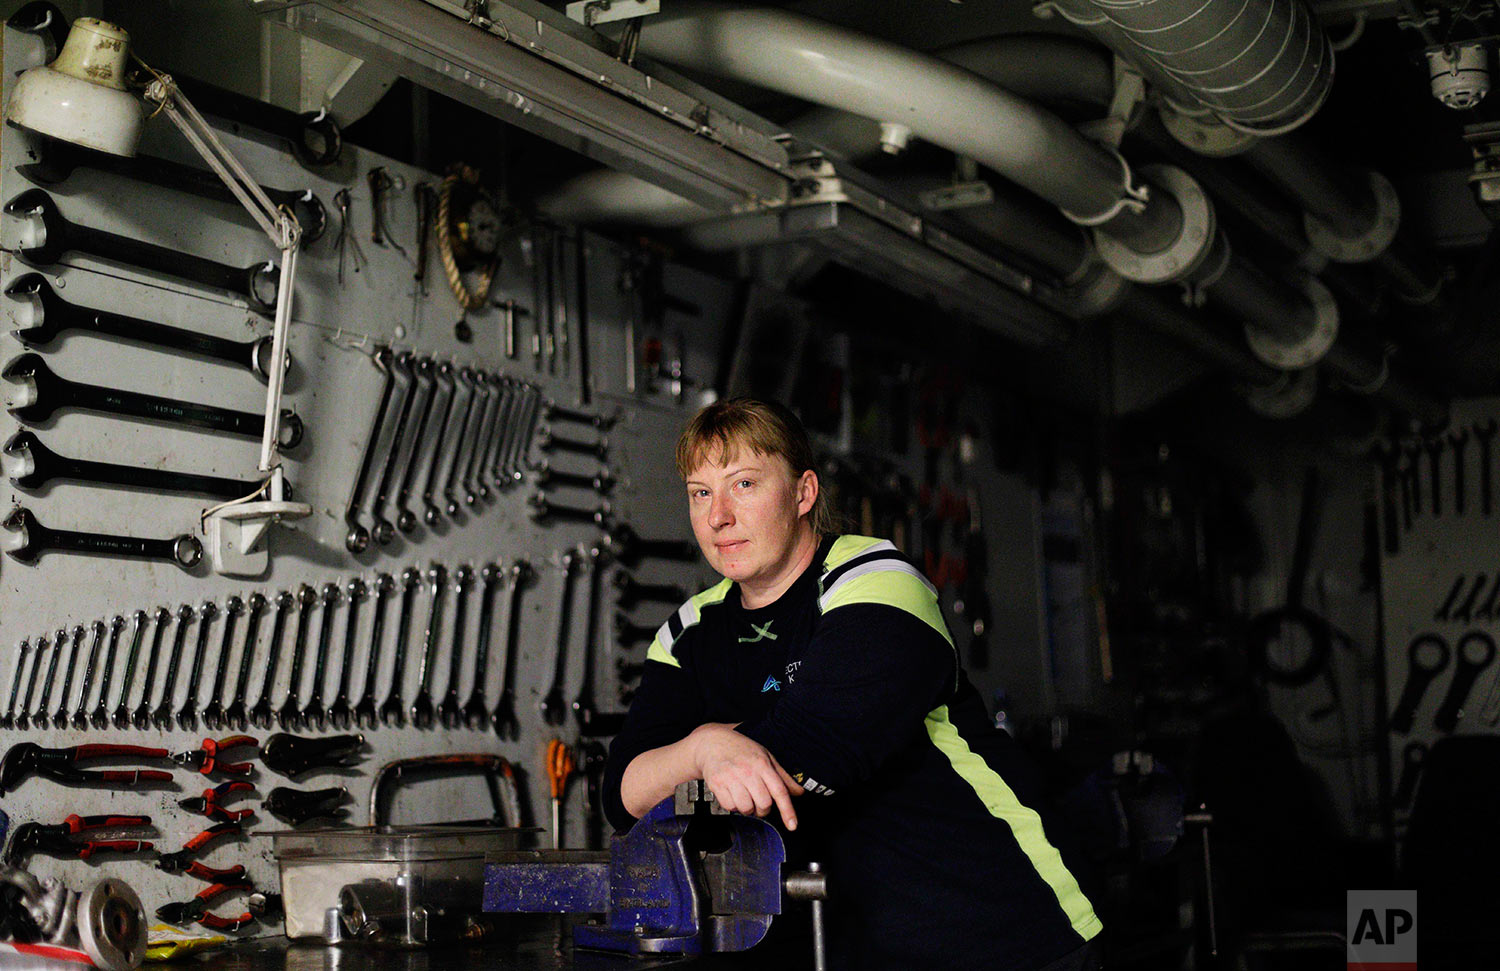 """Electrician Kaija Peuhkuri, 42, stands for a portrait in the machine shop of the Finnish icebreaker MSV Nordica as the ship sails north in the Bering Sea toward the Arctic, Wednesday, July 12, 2017. Peuhkuri started as a cook on ships over 20 years ago before going back to school and becoming an electrician on icebreakers in 2009. Growing up on a farm working on machines, she prefers working away at sea as opposed to commuting to a job at home. """"I don't want to do this every morning,"""" she said of having to drive to work. """"Here, I come downstairs every morning, have a cup of coffee and I'm at work."""" (AP Photo/David Goldman)"""